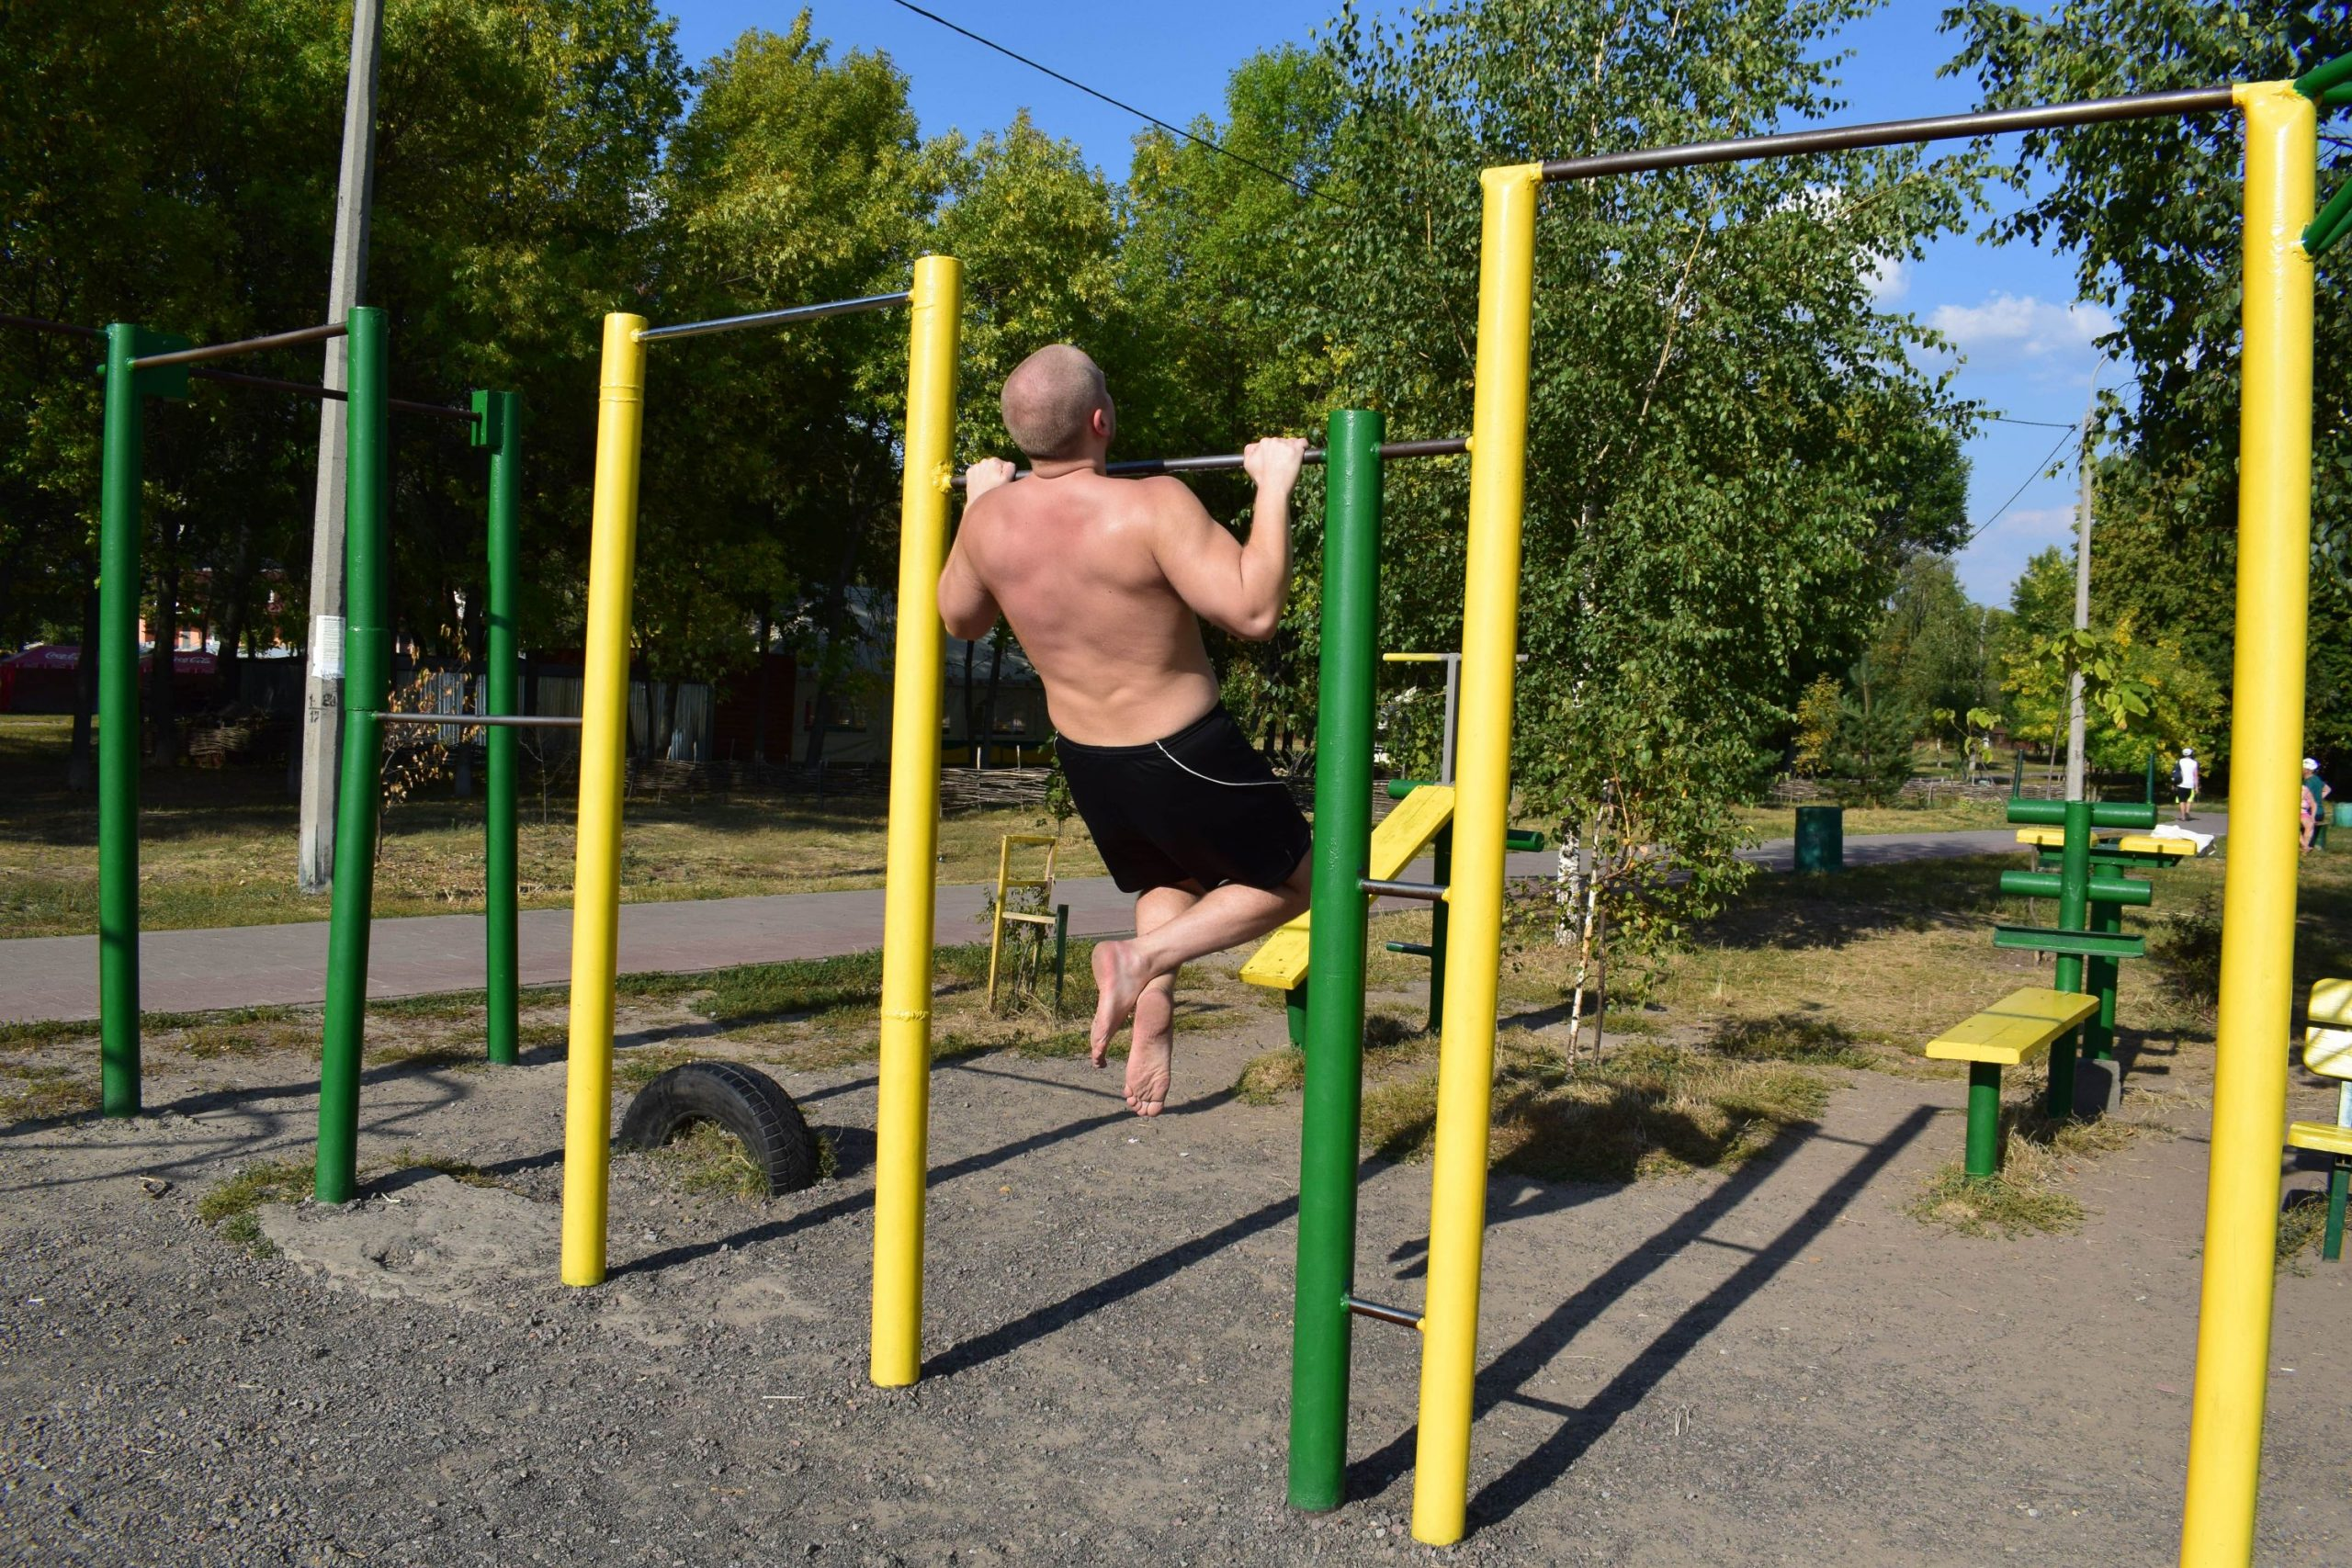 sport_maidanchyk_sumy_11